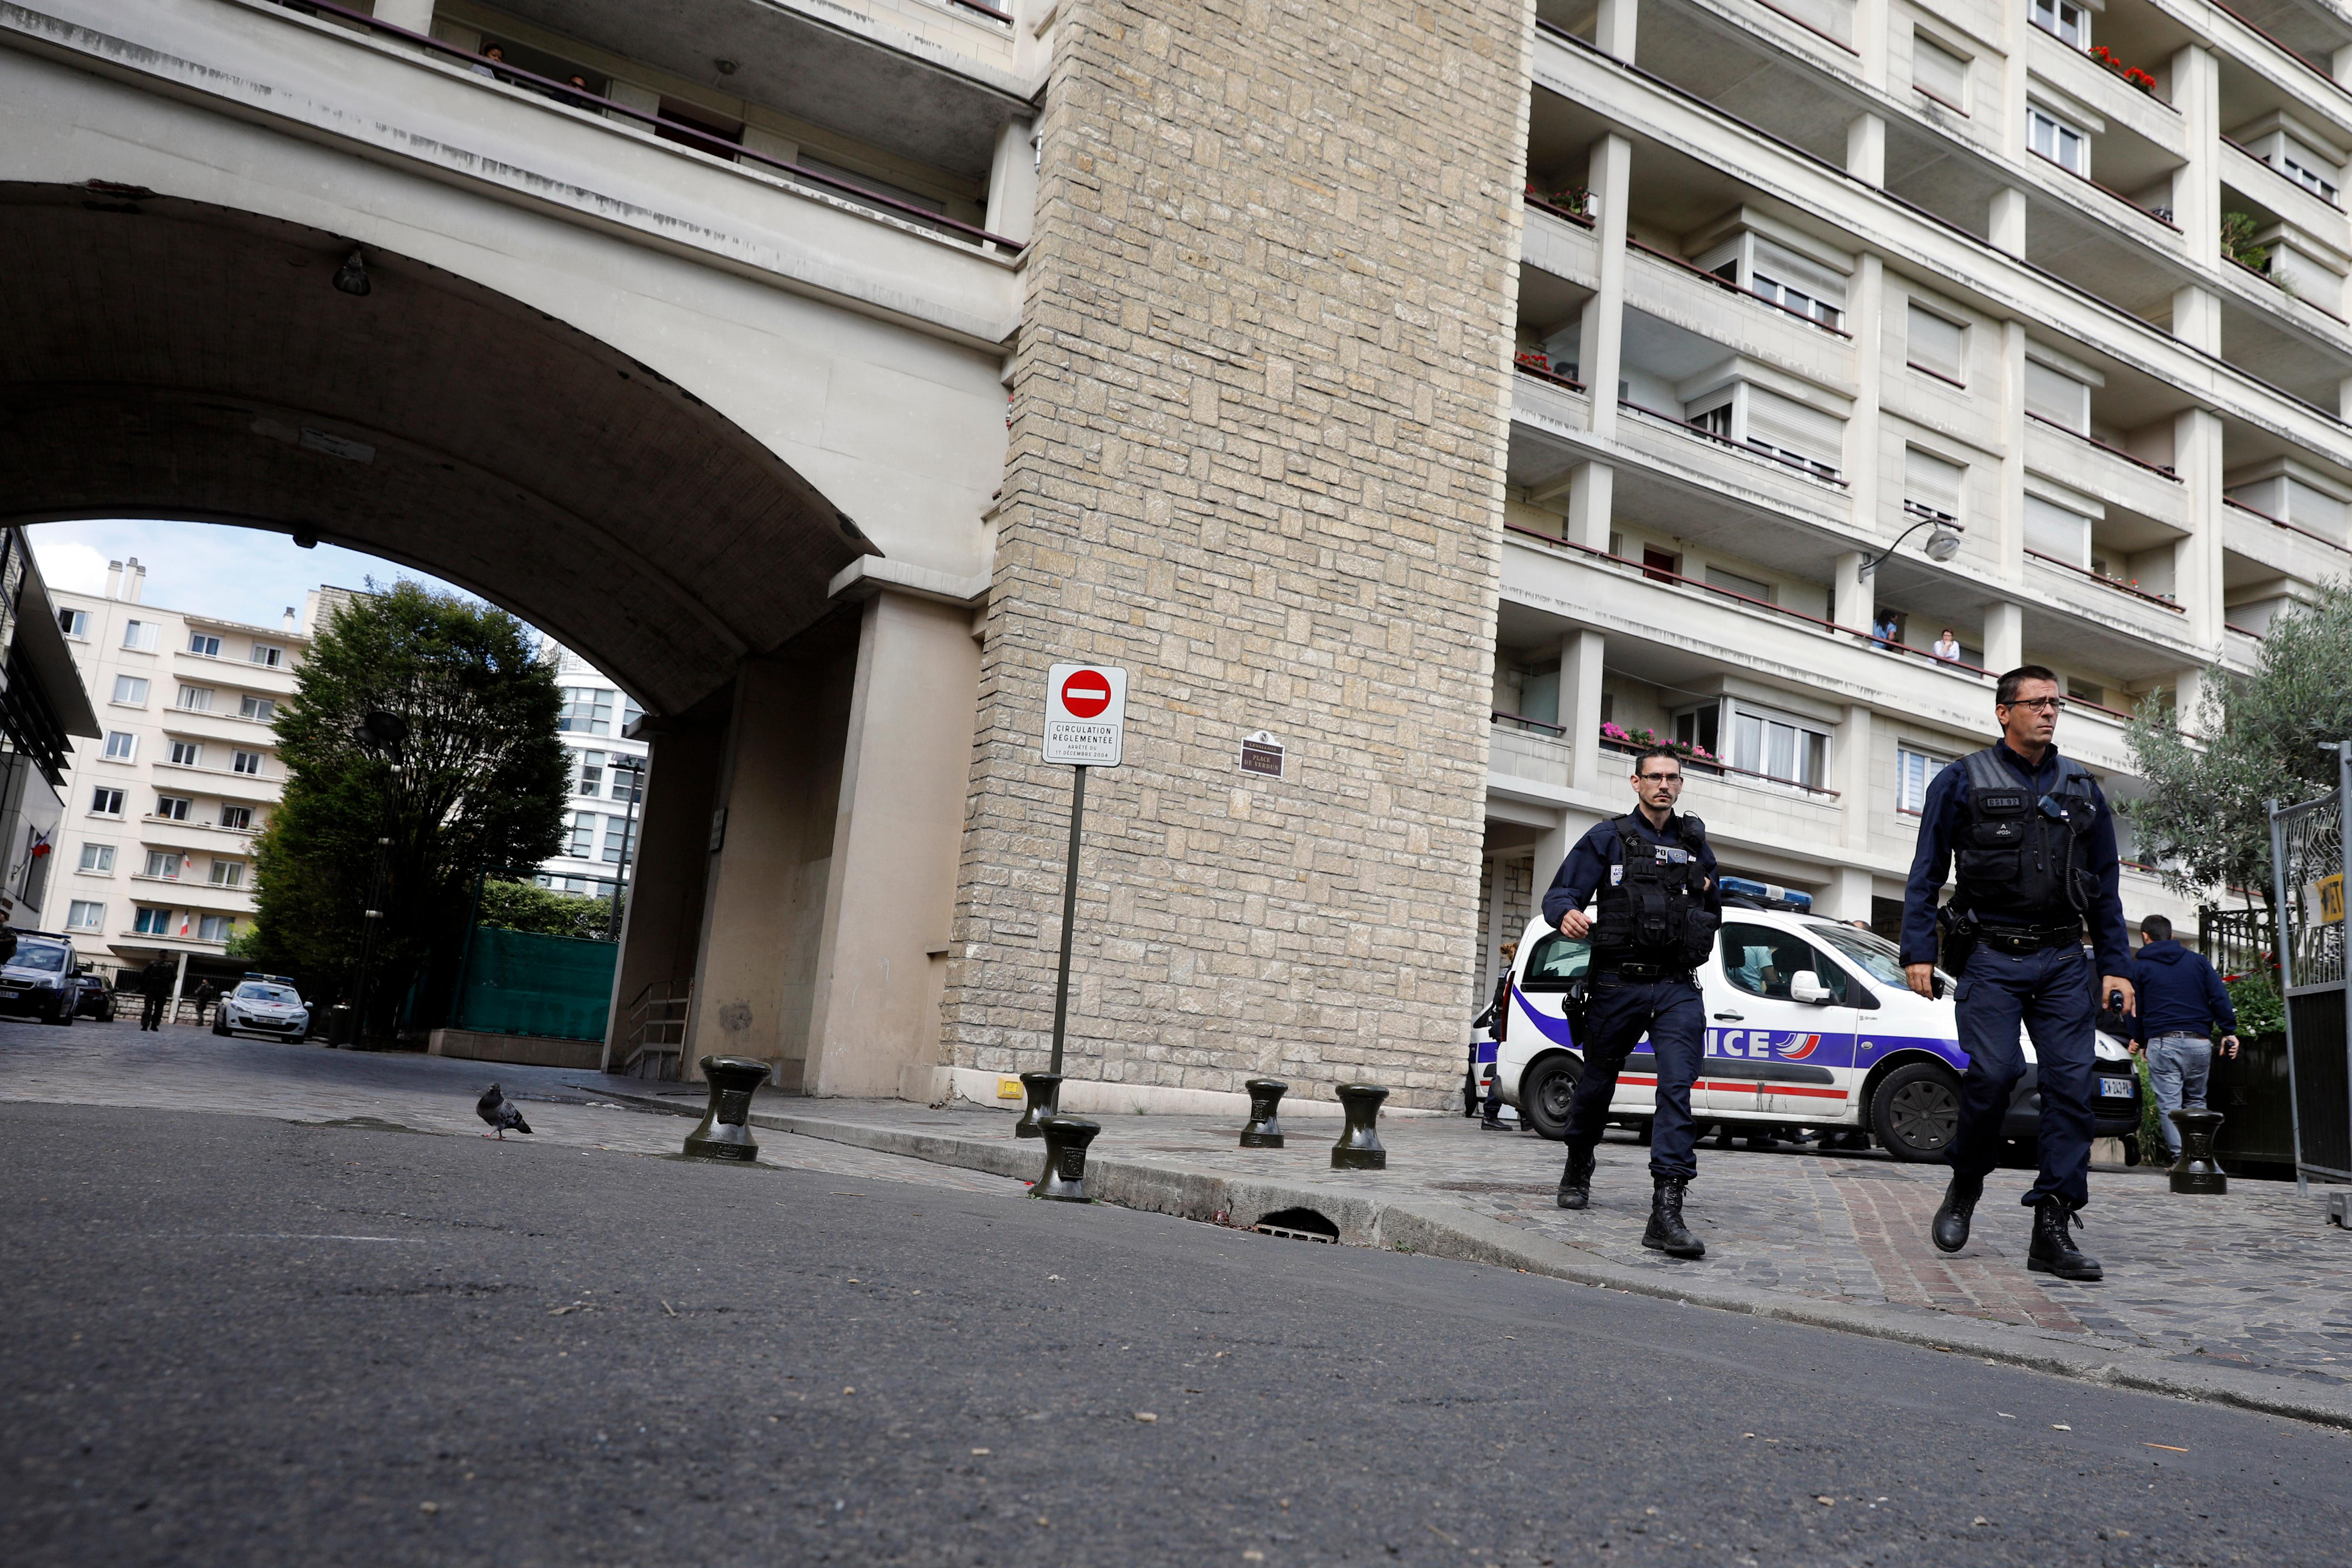 French police officers work near the scene where French soldiers were hit and injured by a vehicle in the western Paris suburb of Levallois-Perret near Paris, France, Wednesday, Aug. 9, 2017. French police are searching for a driver who slammed his BMW into a group of soldiers, injuring six of them in an apparent ambush before speeding away, officials said. The incident in Levallois, northwest of Paris, is the latest of several attacks targeting security forces in France.(AP Photo/Kamil Zihnioglu)